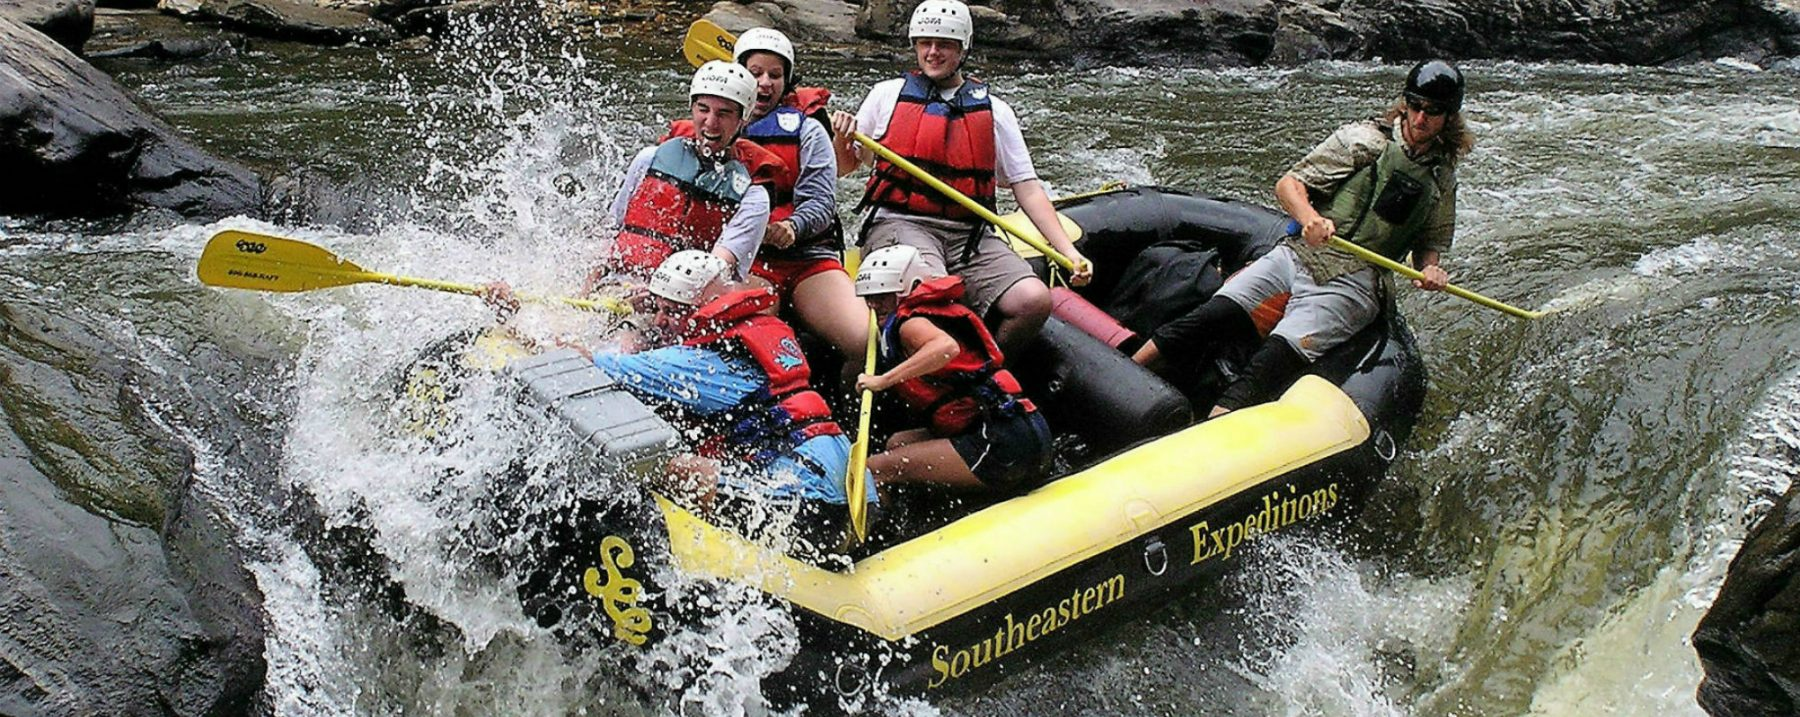 Photo of Activities Near Beechwood Inn - Rafting on the Chattooga River - Pretty Exciting